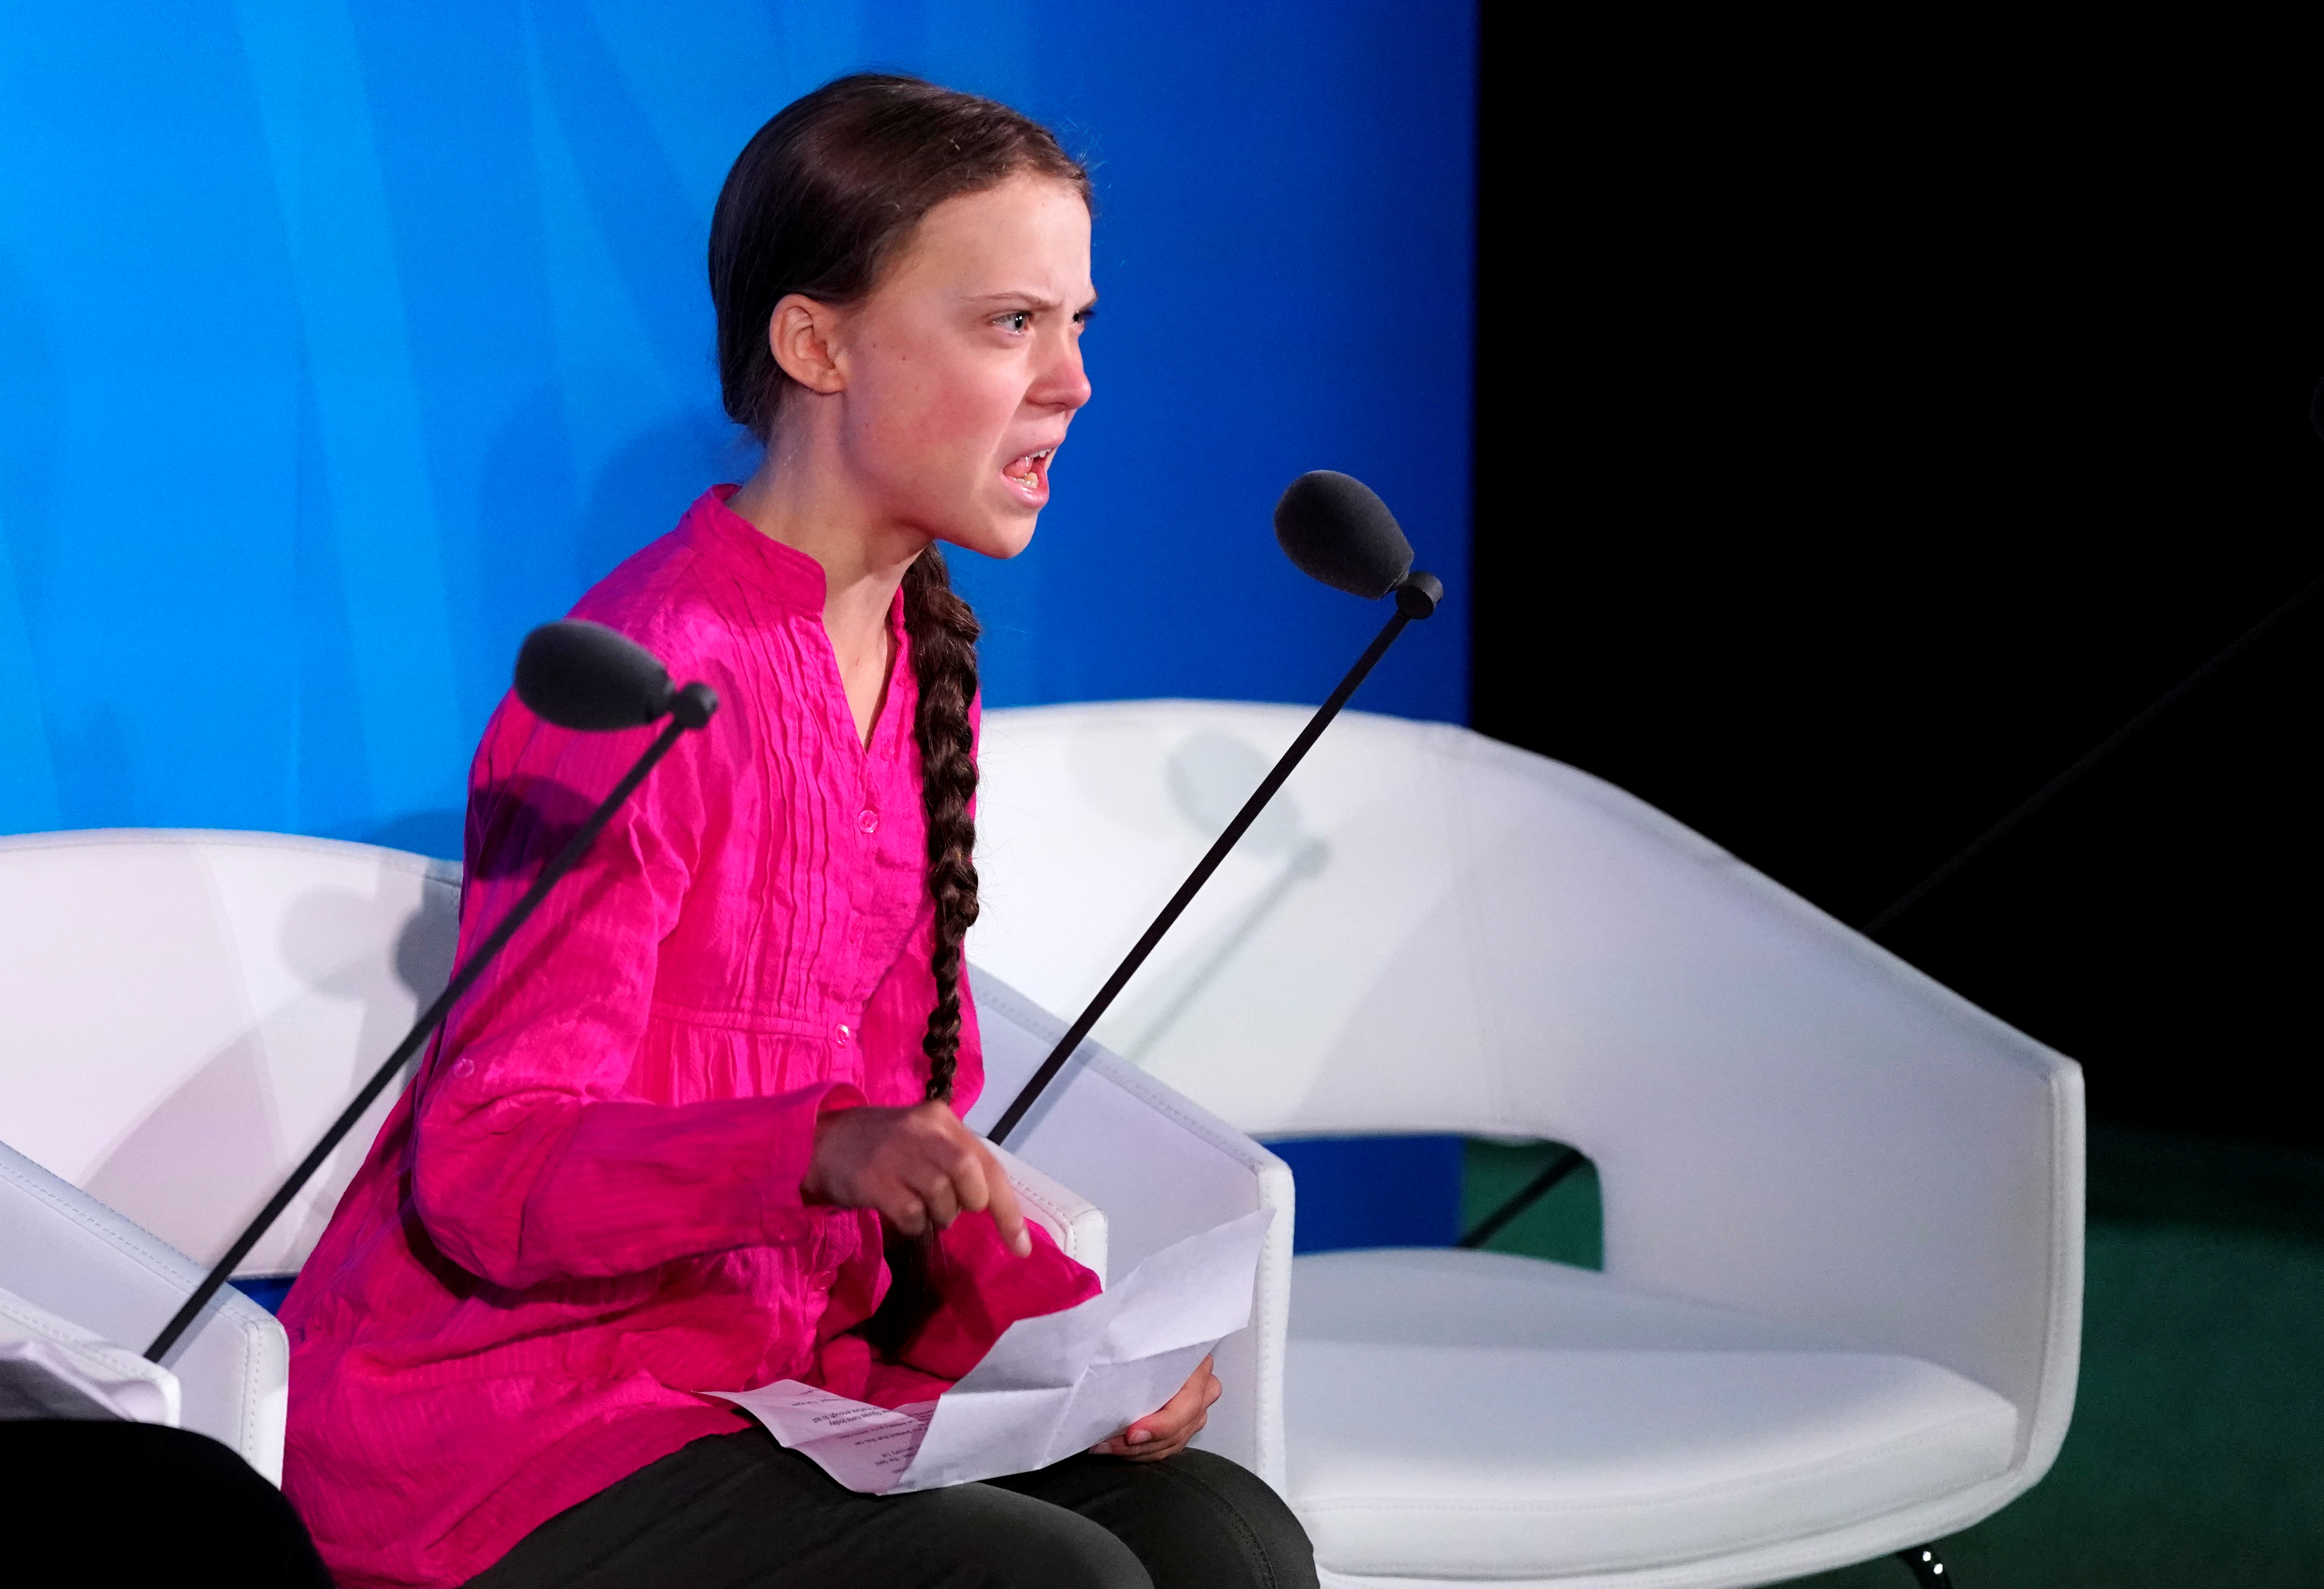 Thunberg at the UN climate action summit